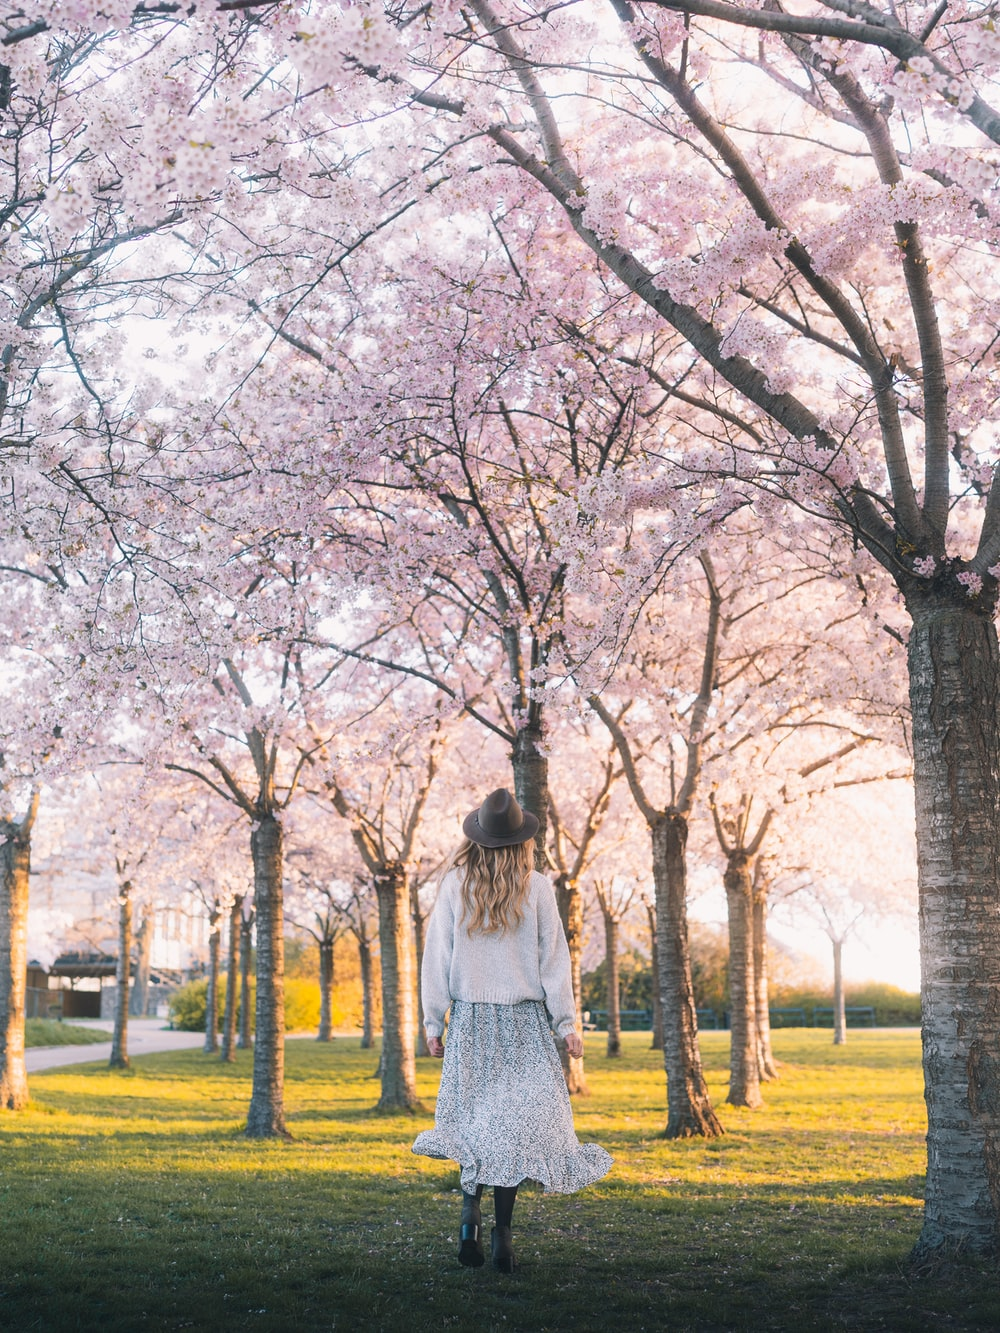 woman in white dress standing on green grass field near bare trees during daytime